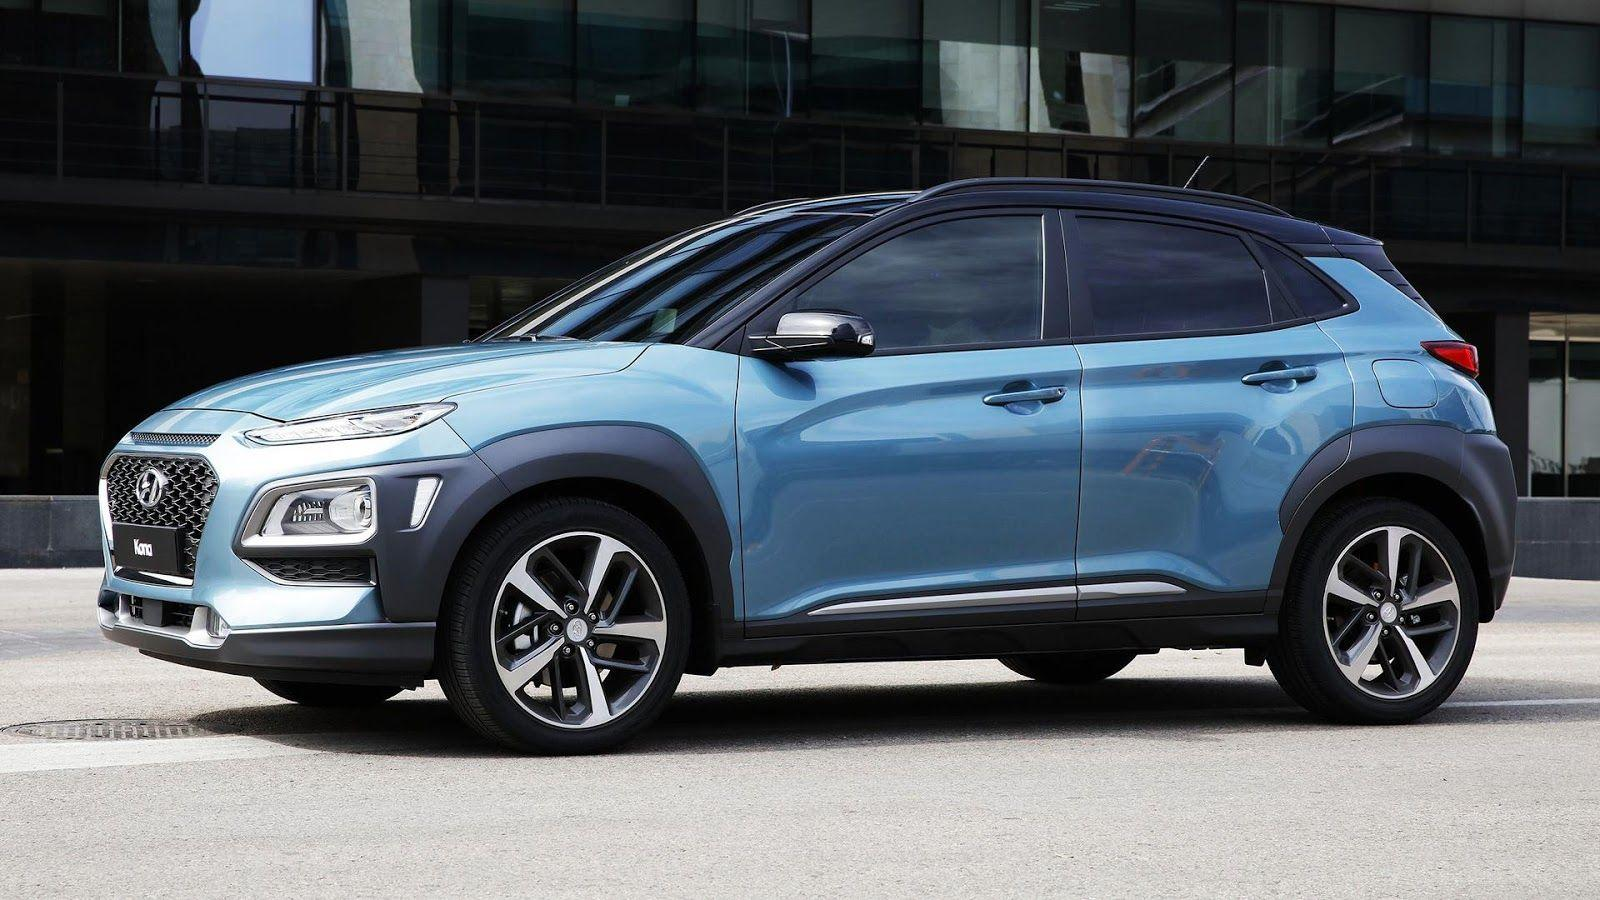 Electric Hyundai Kona Confirmed For 2018 With A Range Of Over 240